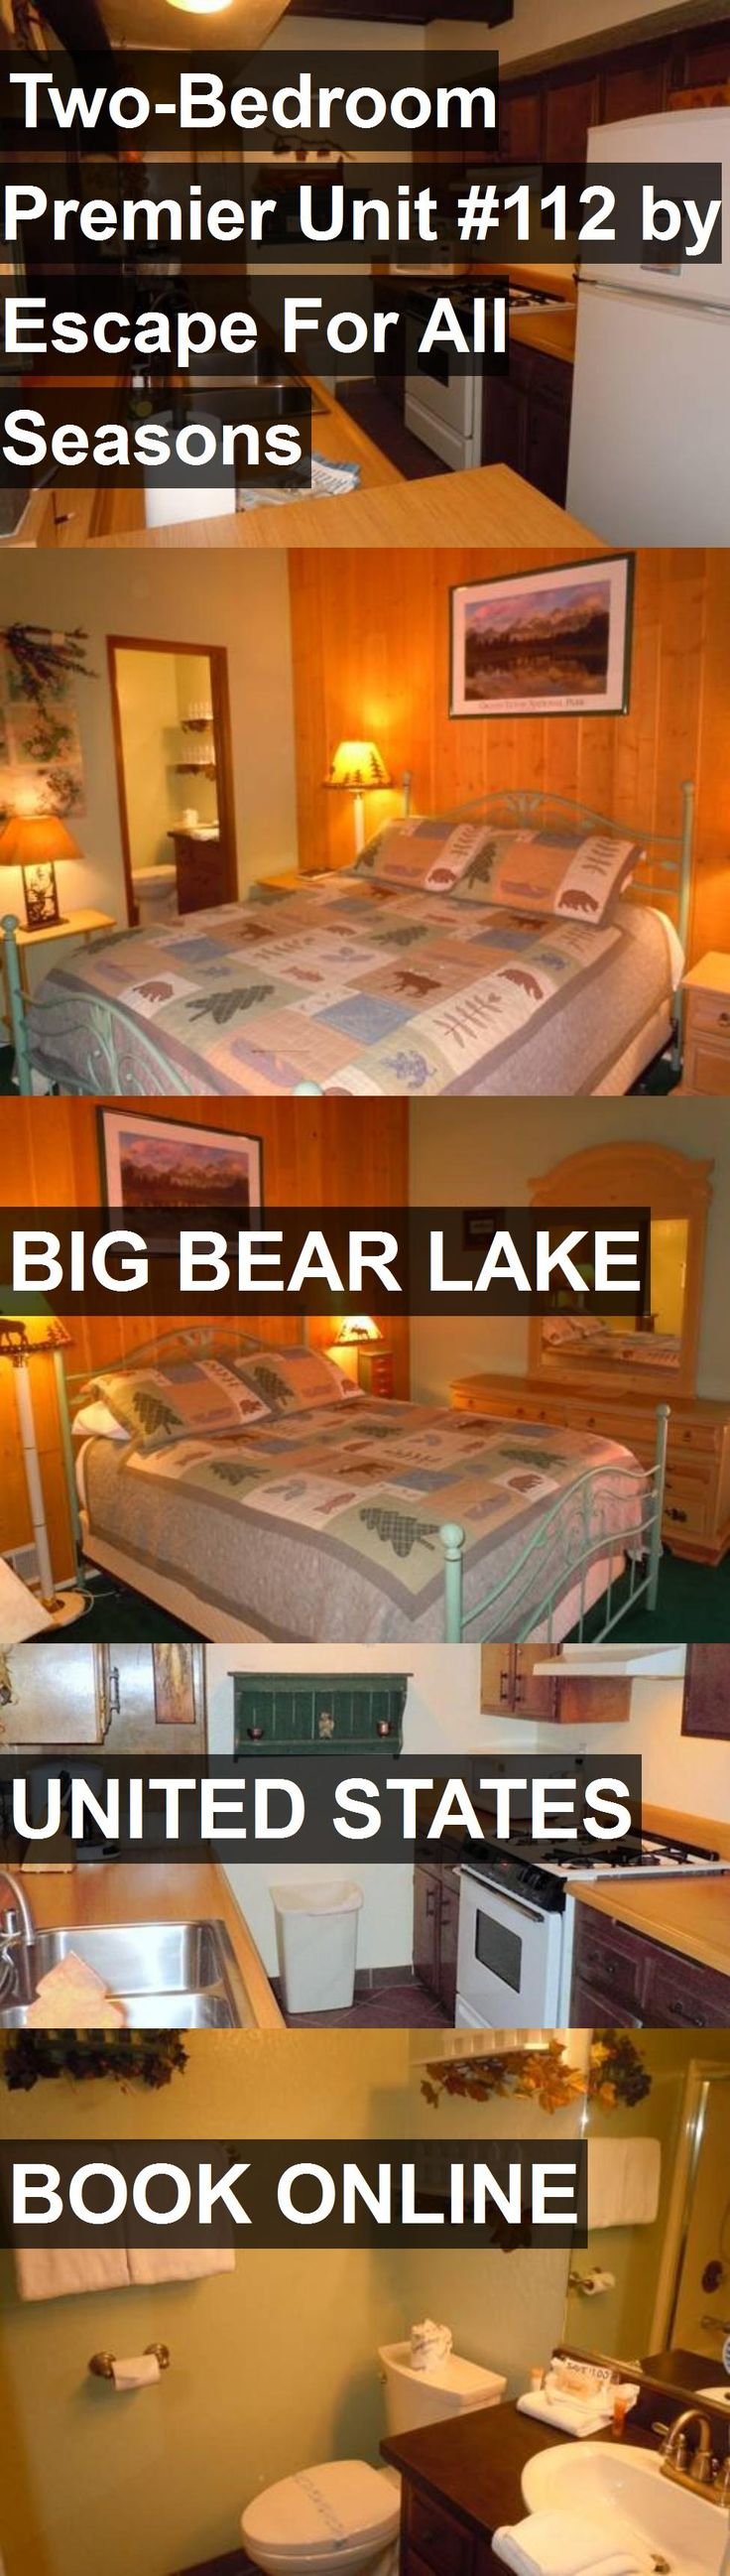 Hotel Two-Bedroom Premier Unit #112 by Escape For All Seasons in Big Bear Lake, United States. For more information, photos, reviews and best prices please follow the link. #UnitedStates #BigBearLake #travel #vacation #hotel